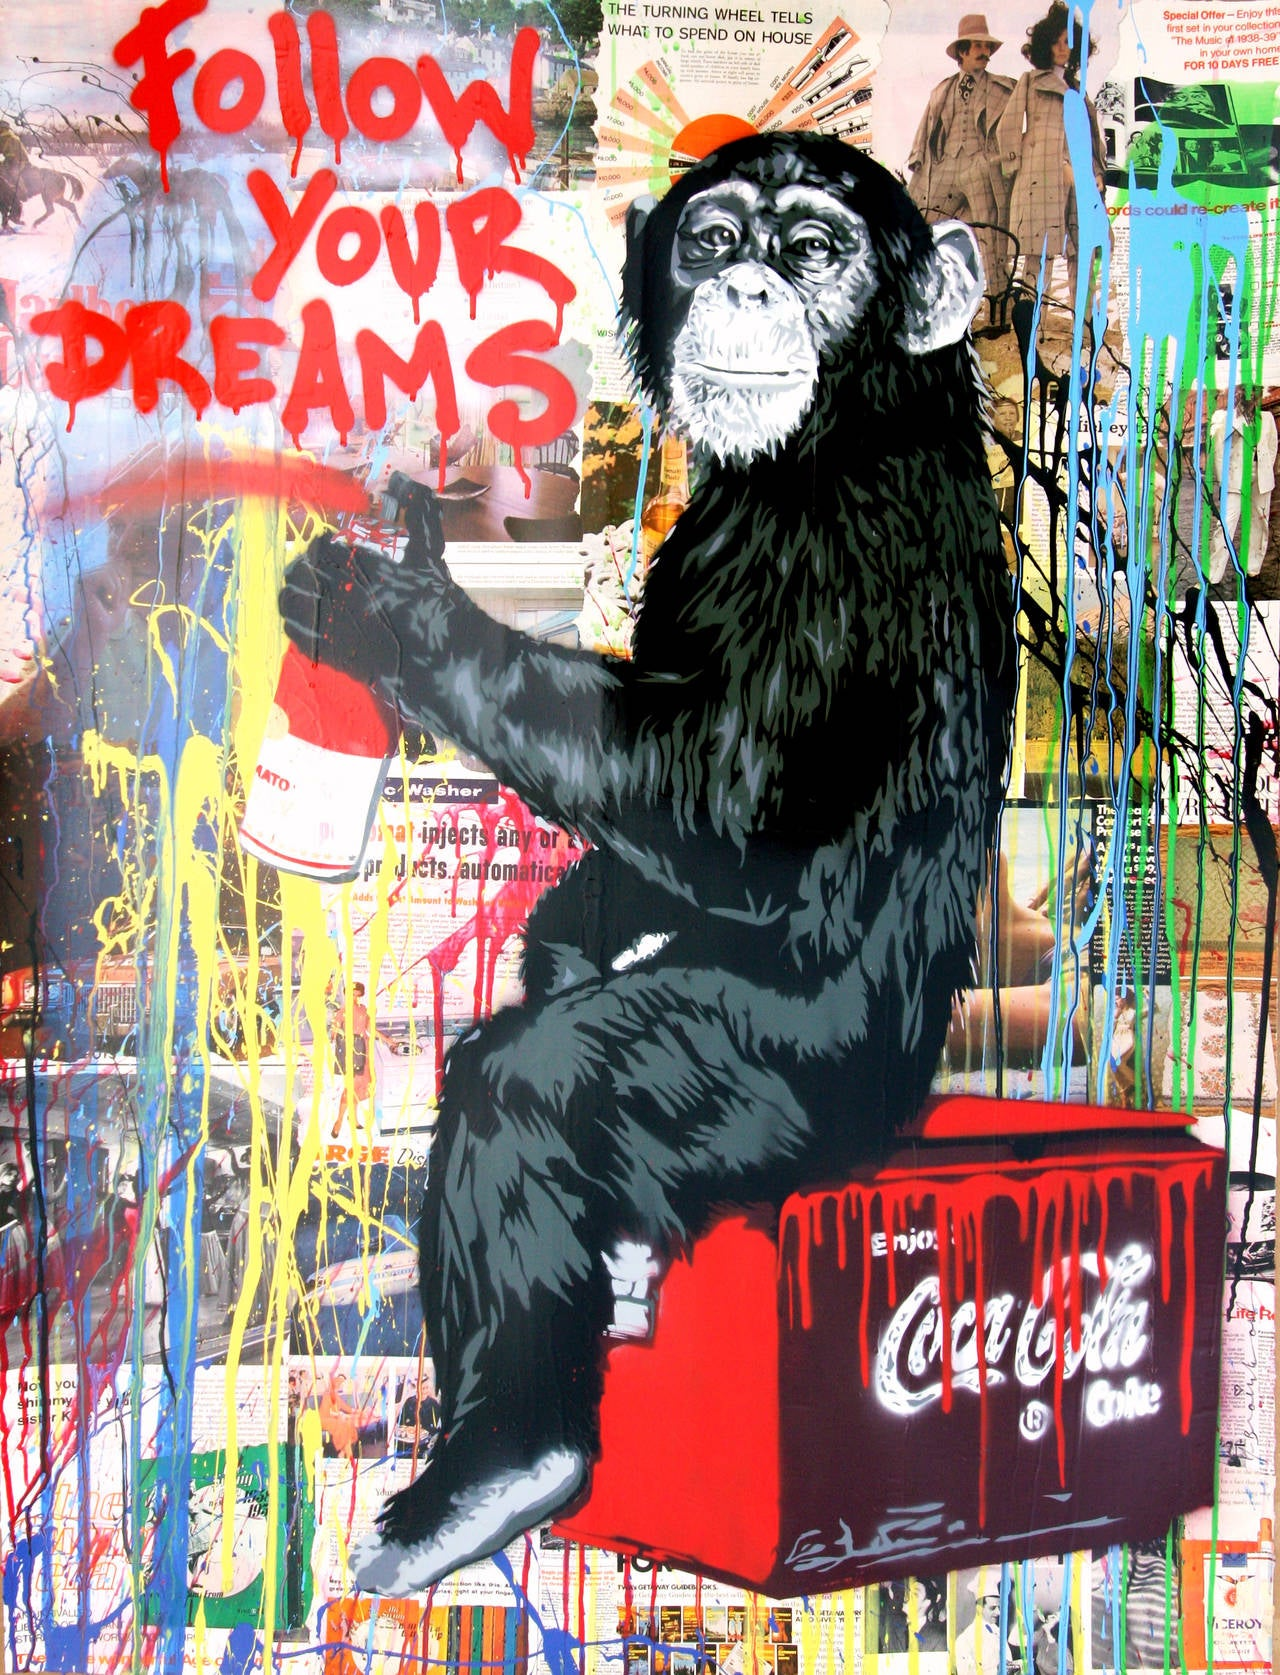 Mr brainwash everyday life mixed media at 1stdibs for Mural painted by street artist mr brainwash